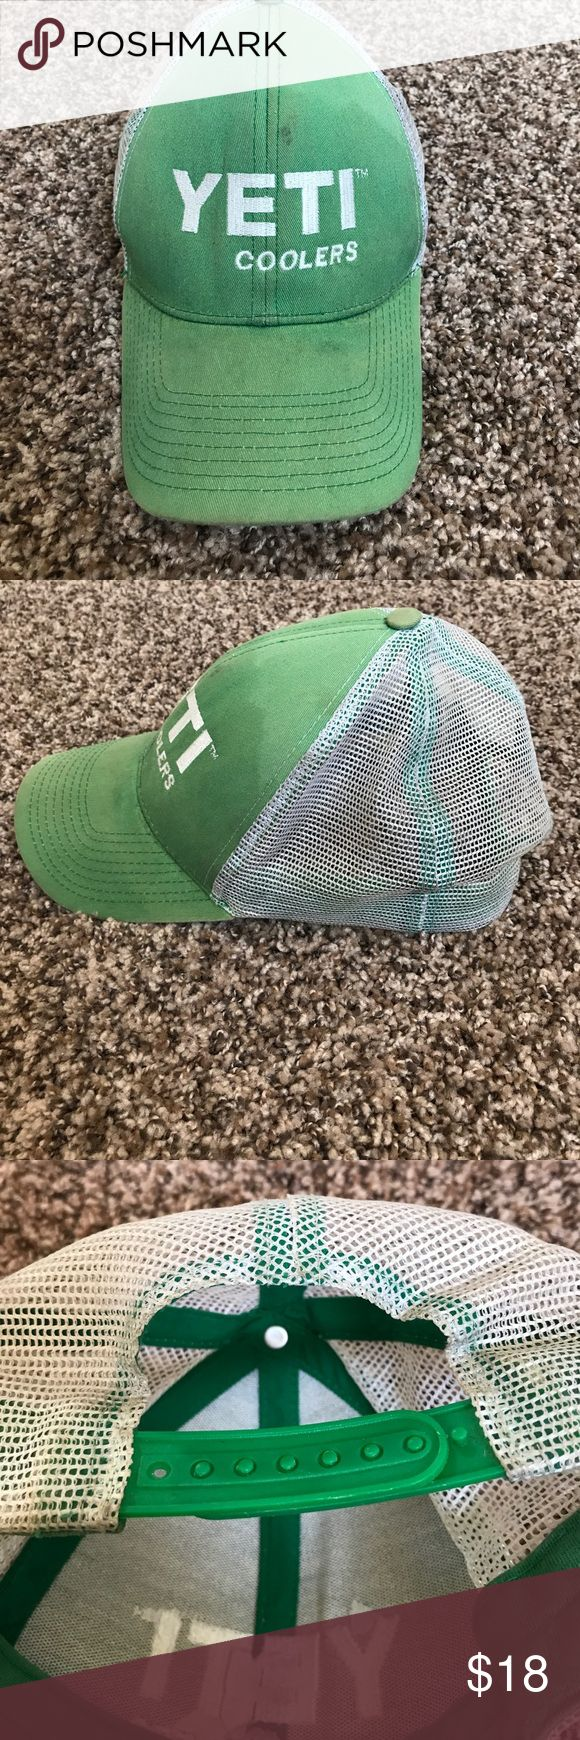 YETI hat Yeti Coolers official hat on green. Used condition but still a great hat! Yeti Accessories Hats